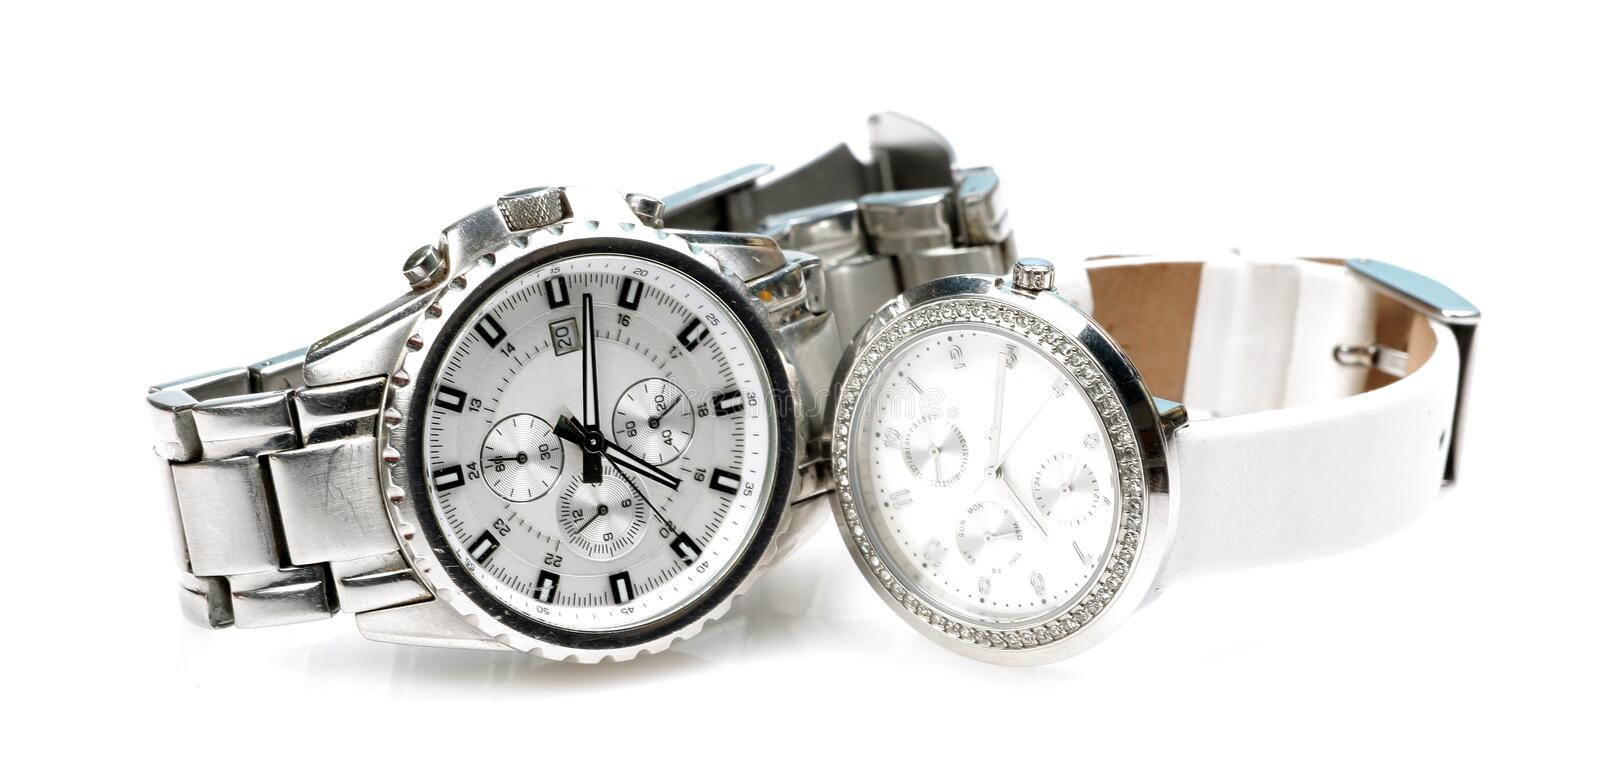 Branded wrist watches